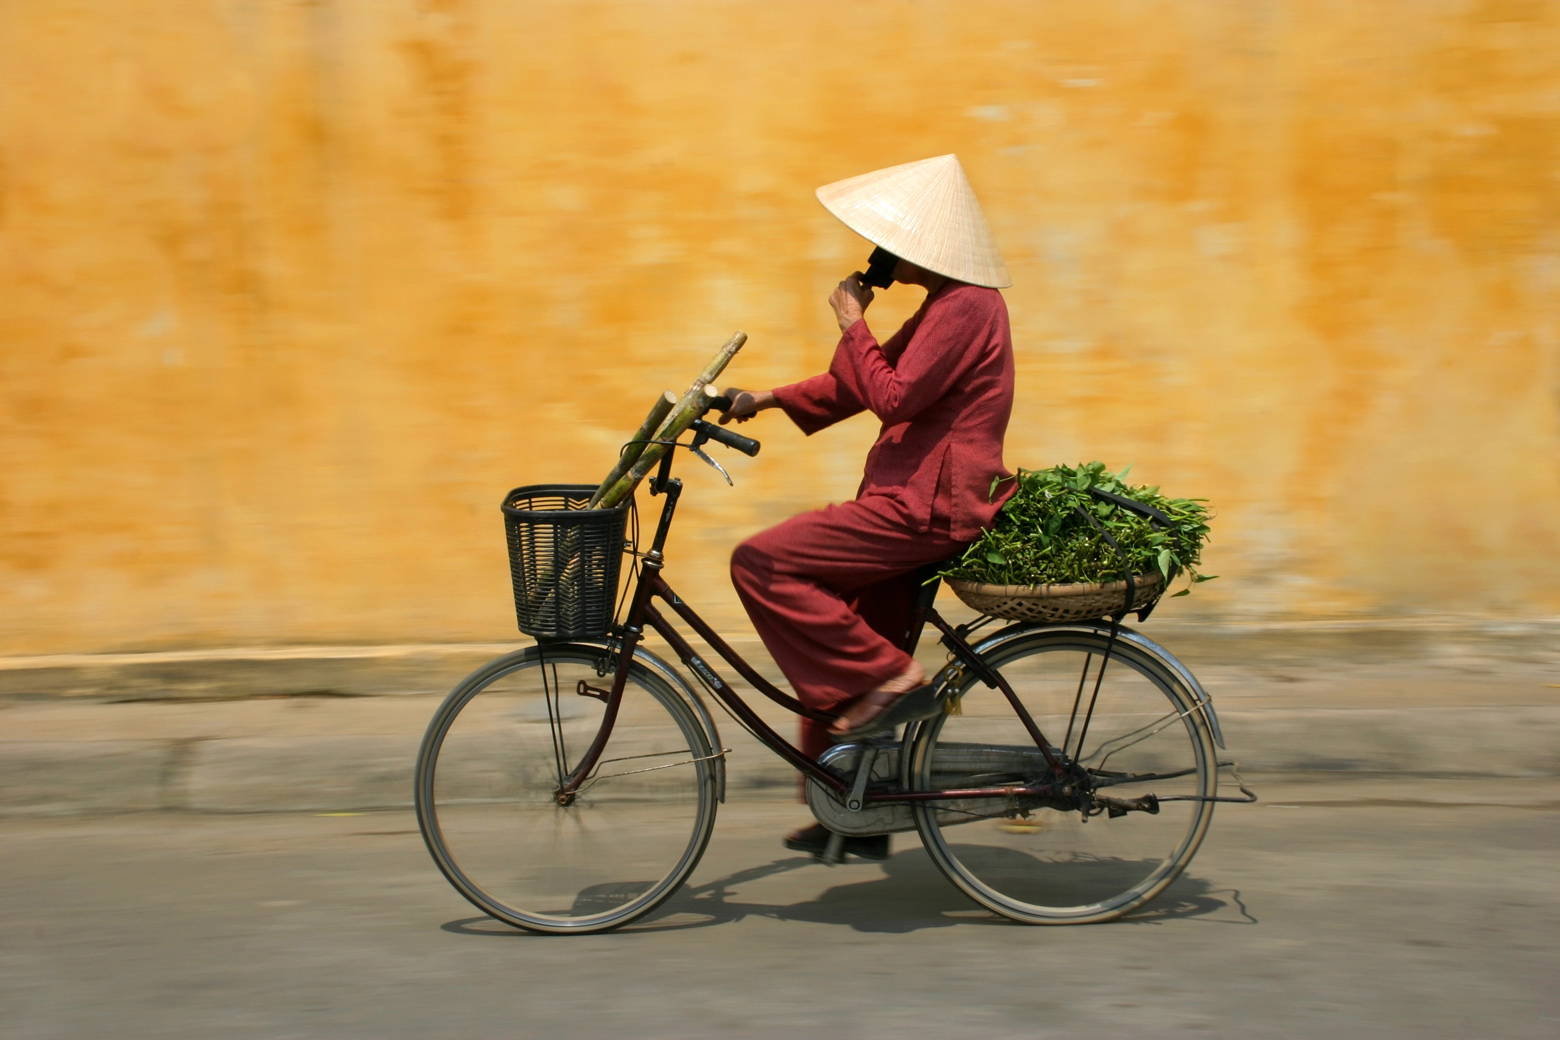 [Article image] [Funds Focus] [CEMP] Asian woman on bicycle